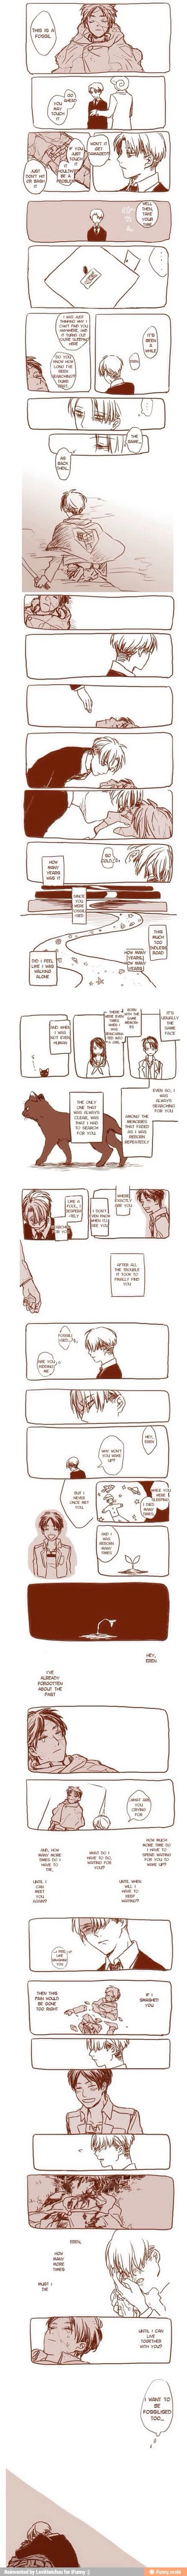 Anime/manga: SNK Characters: Levi and Eren, SAD. Levi as a girl and neko... I PIN TO MUCH DEPPRESSING STUFF ON THIS BOARD. Oh yeah, read like manga.